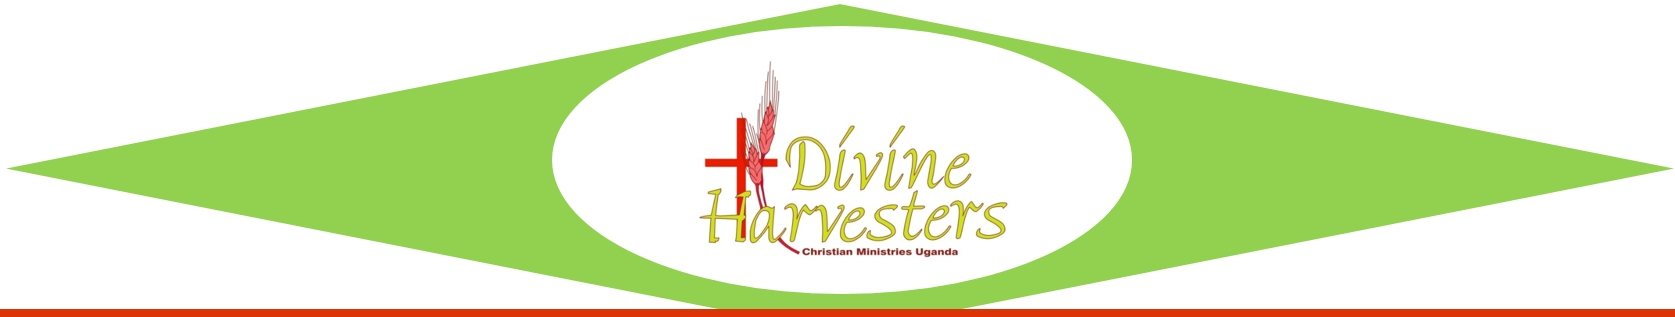 Divine Harvesters Christian Ministries